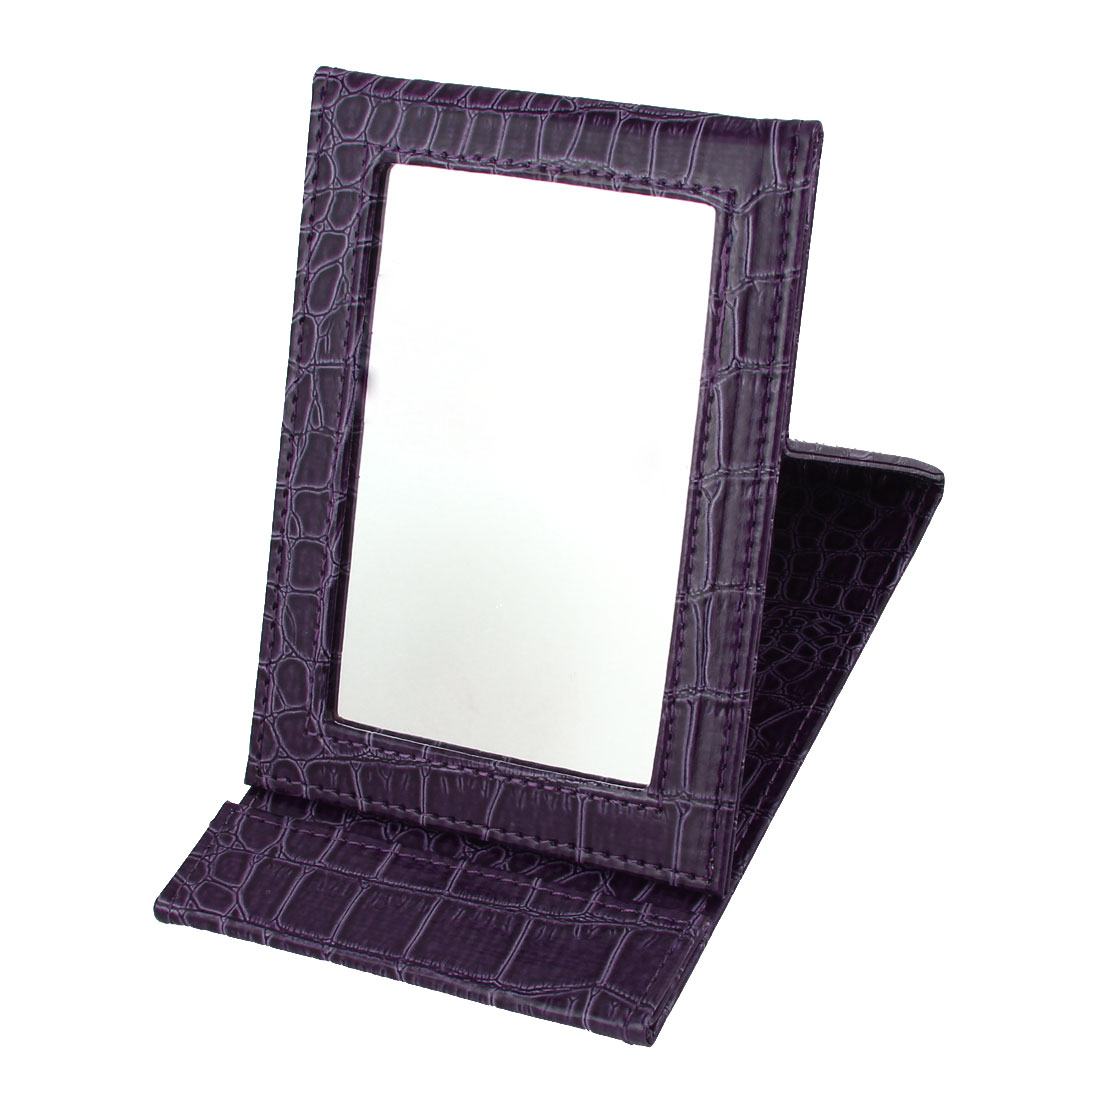 Dark Purple Alligator Pattern Faux Leather Coated Folding Stand Makeup Mirror